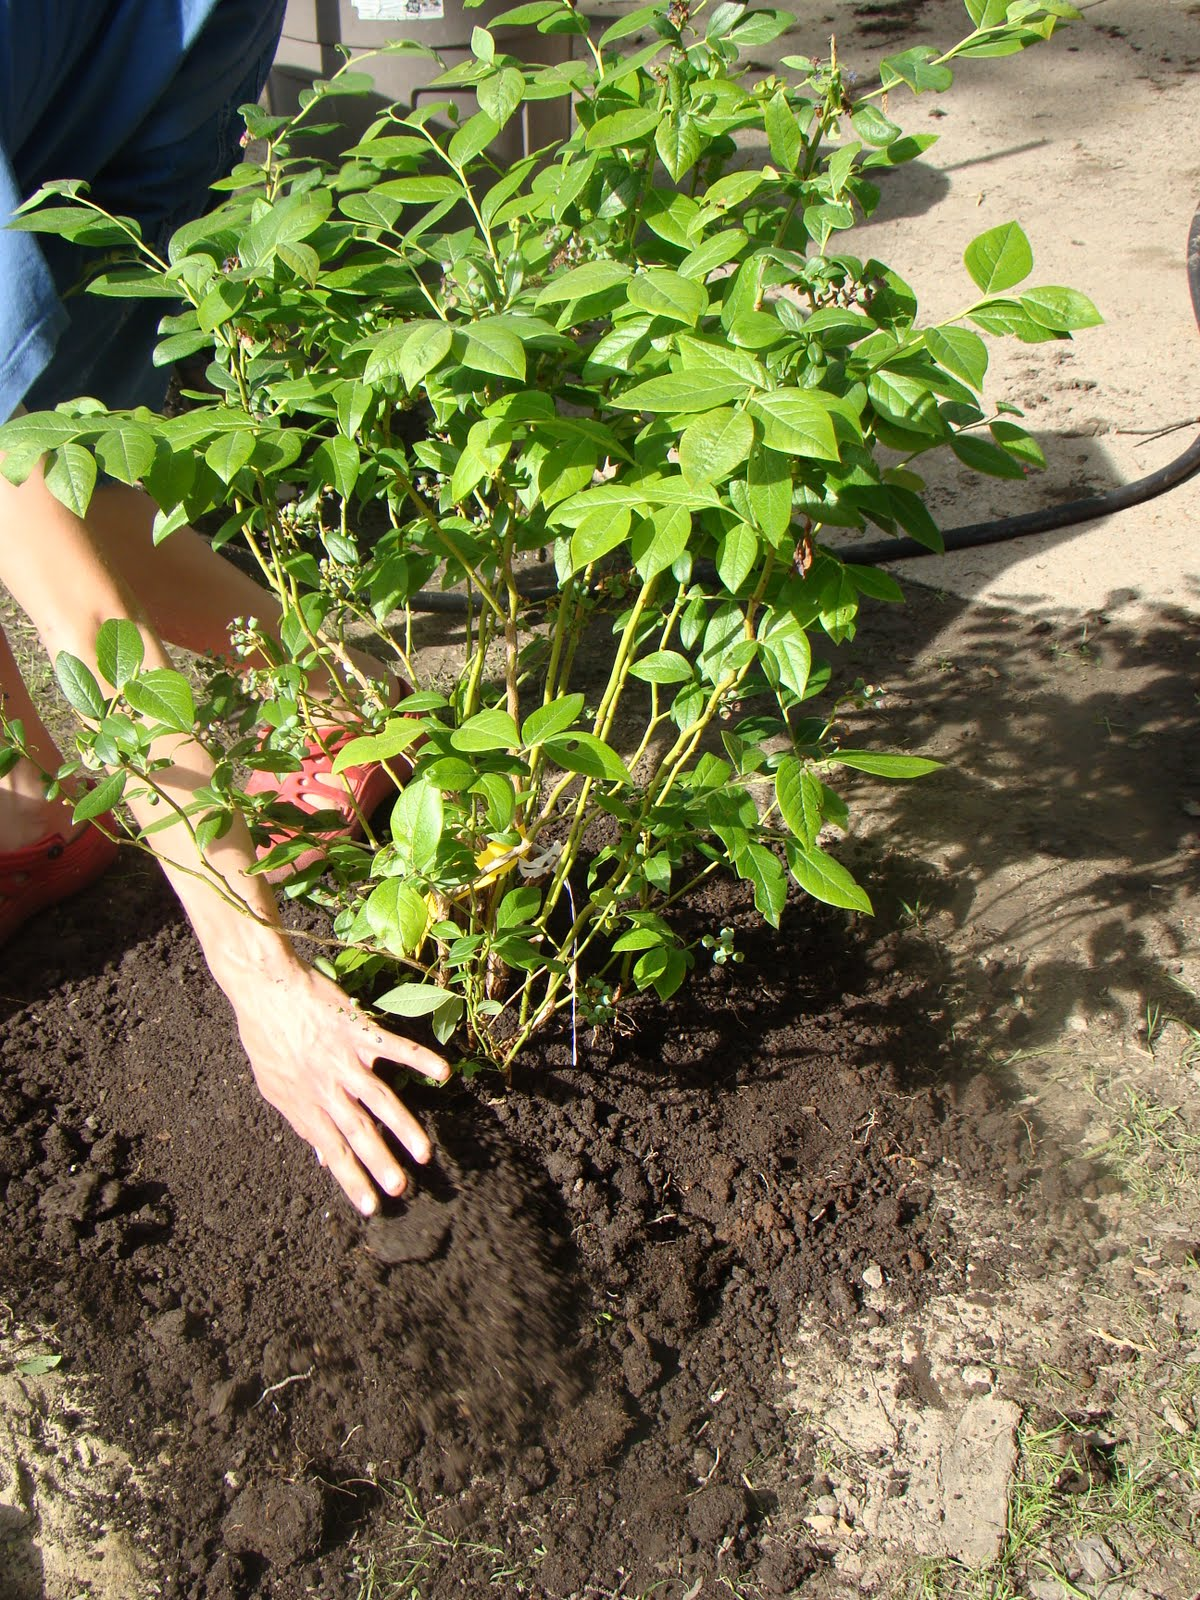 How to plant blueberry bush - I Love Blueberries And I Have Always Wanted To Grow My Own Last Year I Ordered Some From A Plant Catalog And The Tiny Twigs Arrived And Have Done Ok